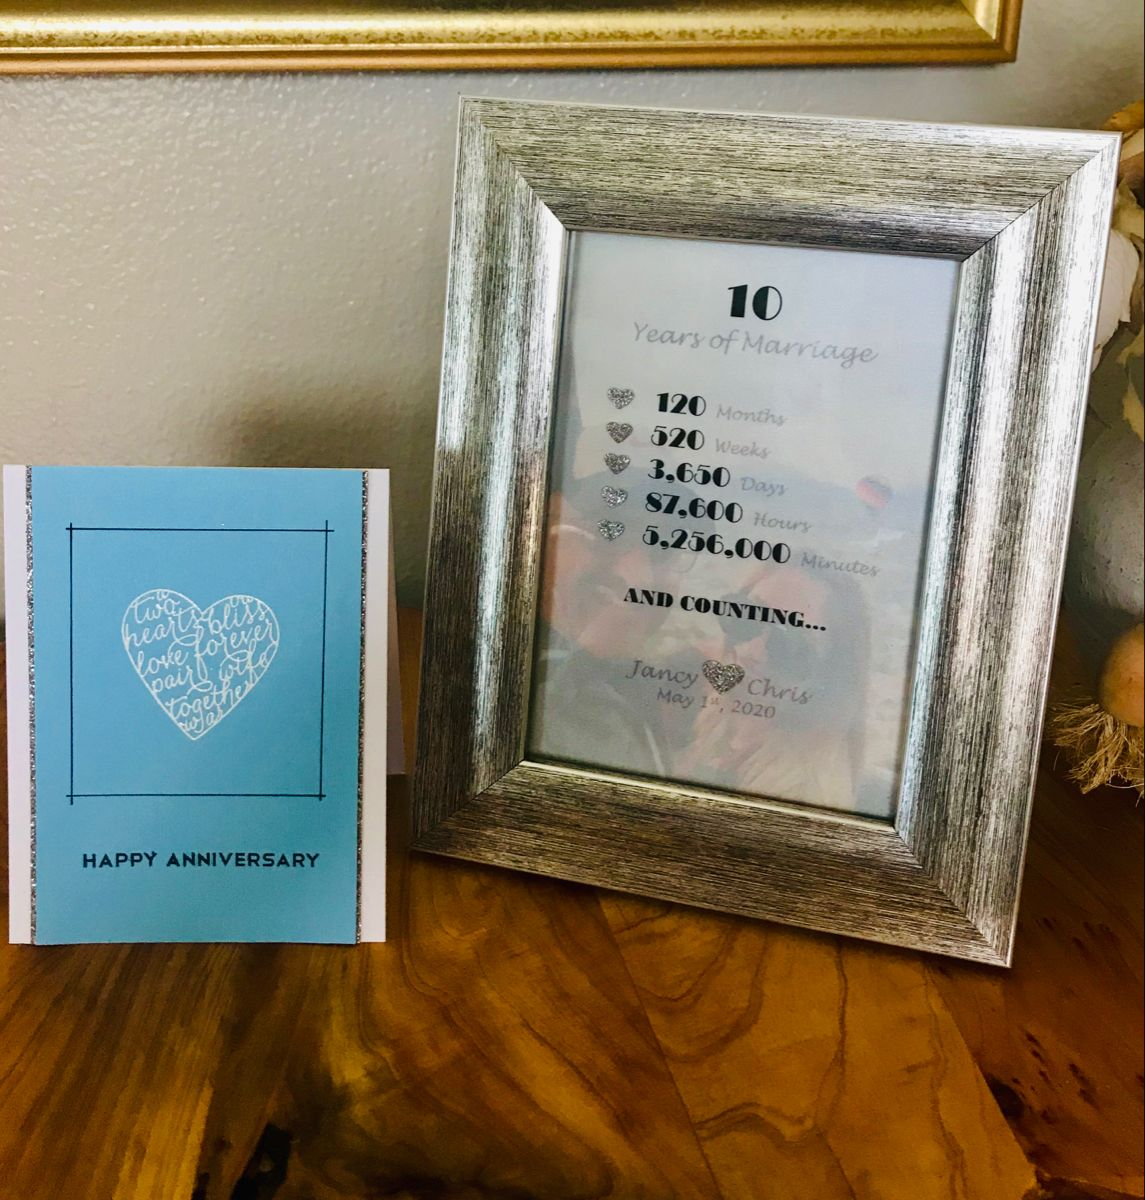 10th Anniversary Card And Frame In 2020 Anniversary Cards Cards 10 Anniversary